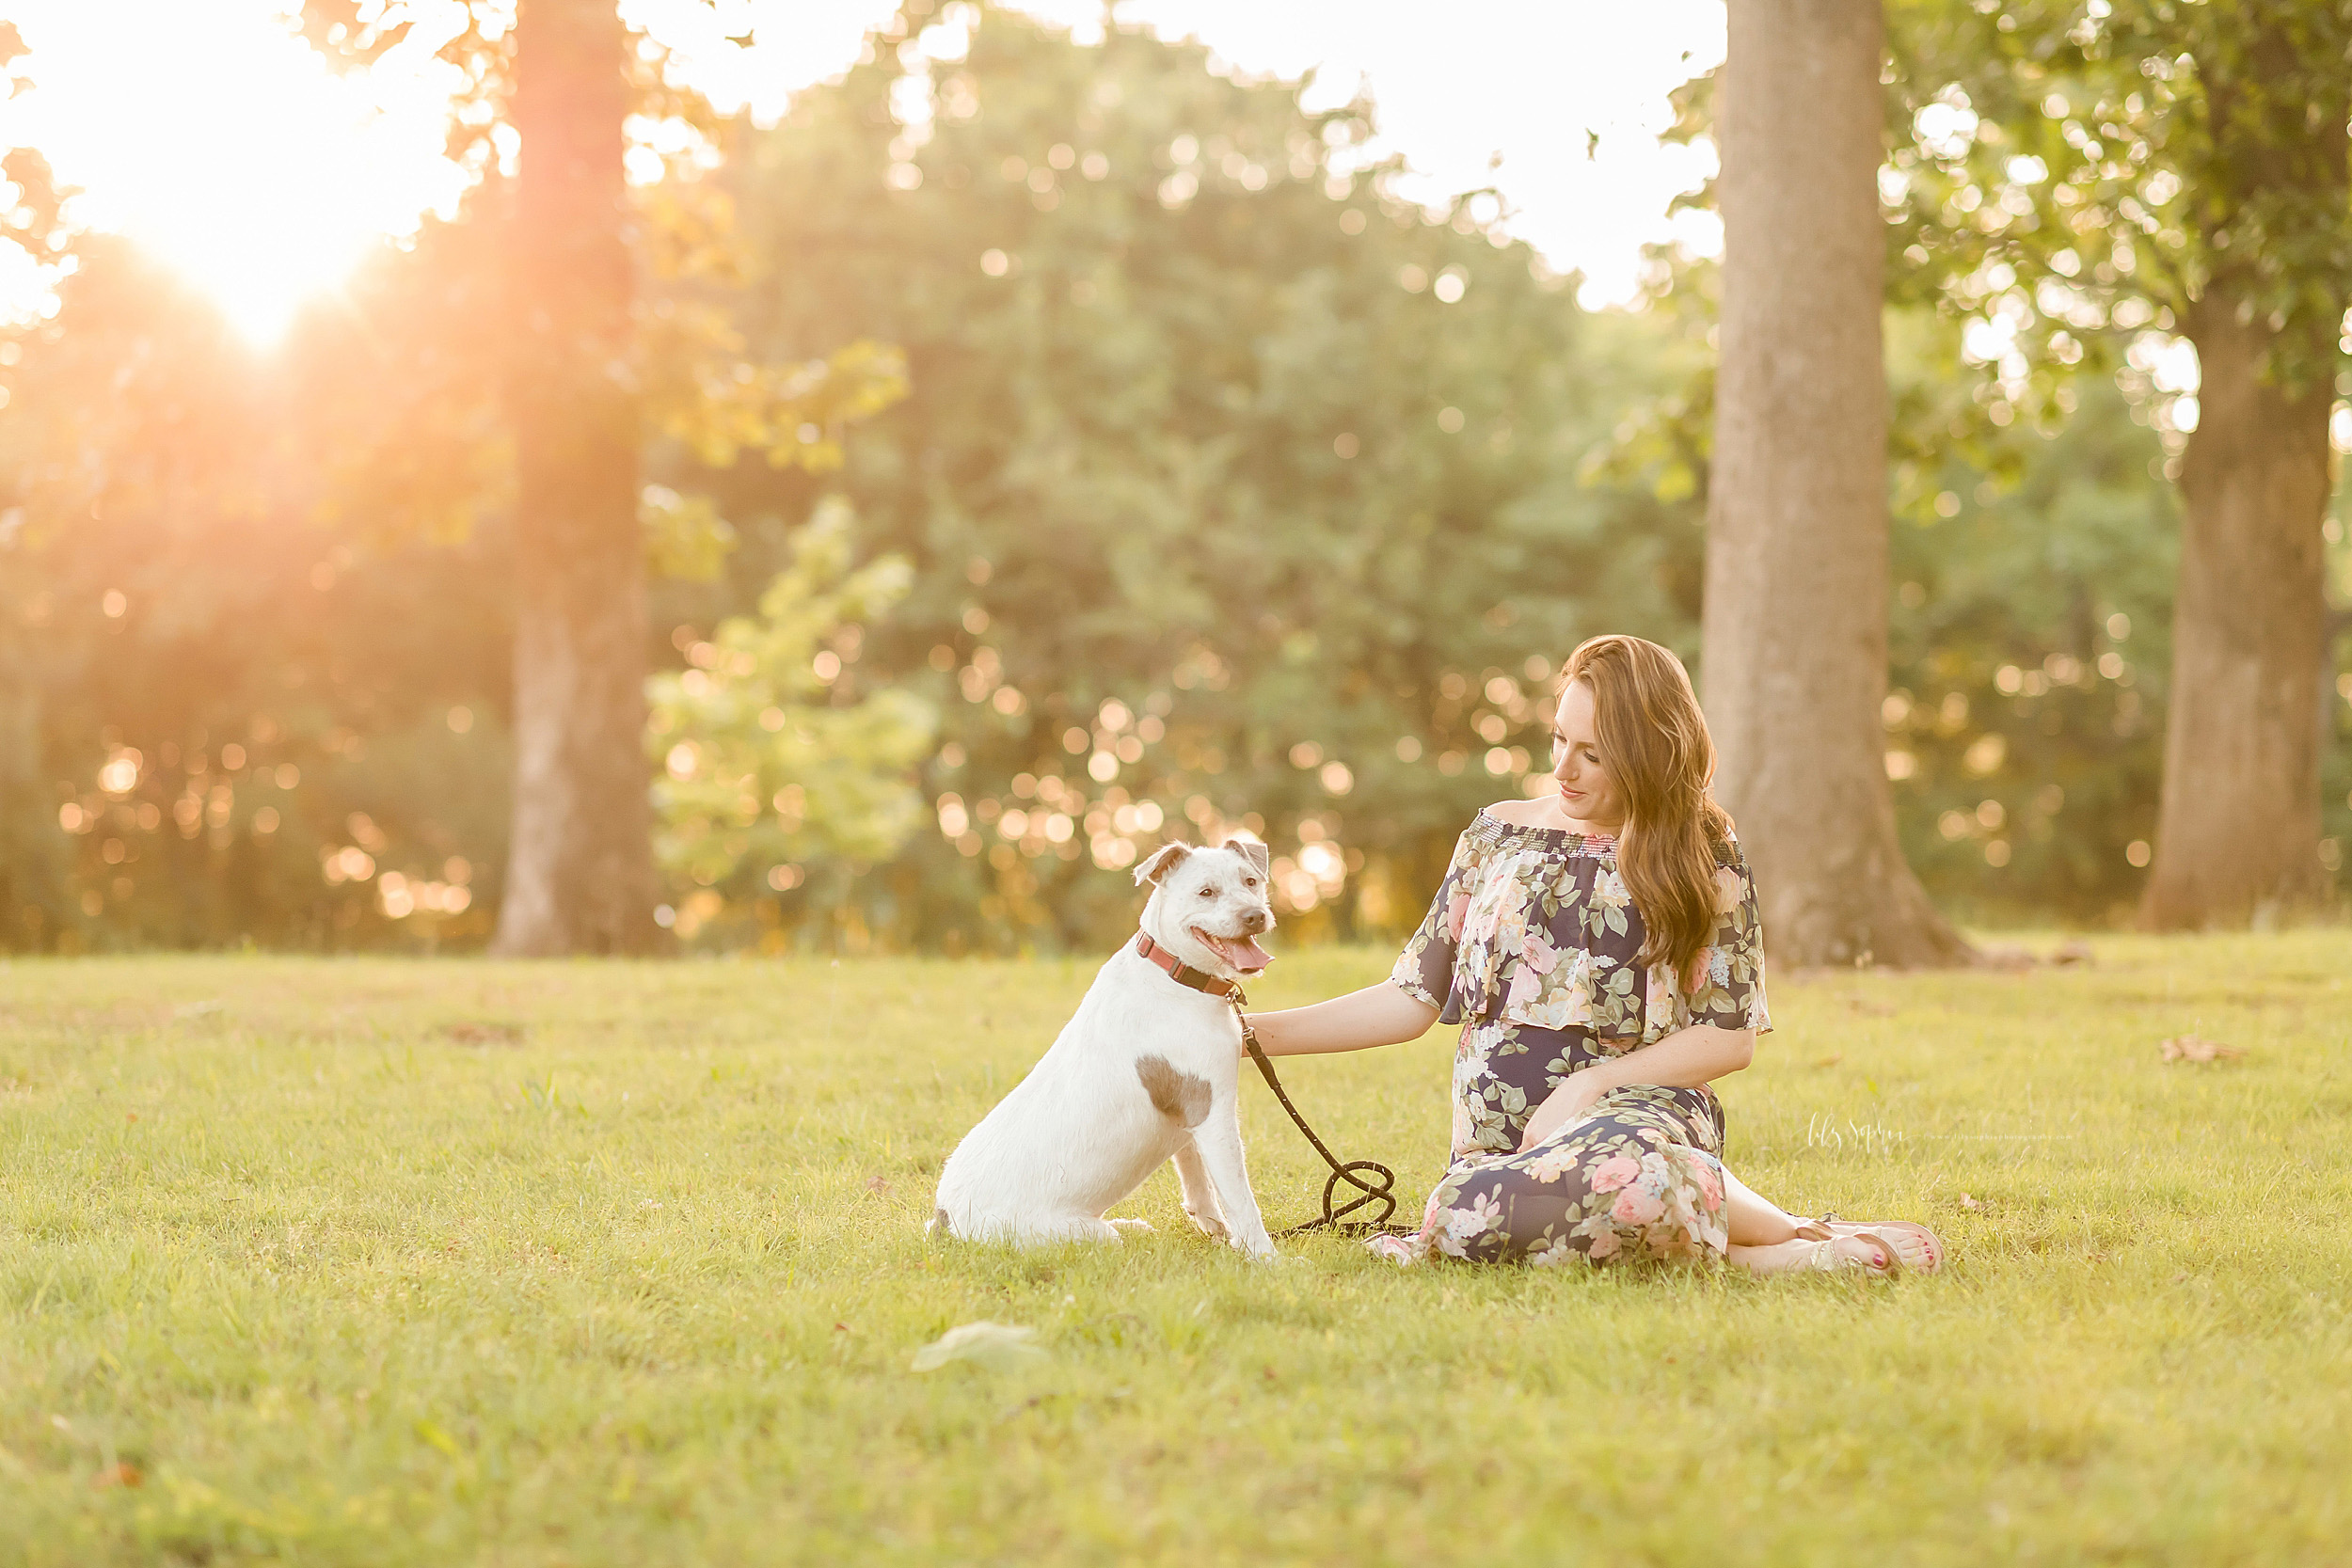 Maternity photo of a woman and her dog at sunset in an Atlanta park. The woman is sitting on the grass with her legs to her left. Her lab puppy is sitting to her left and facing her.  She has her right hand on her lap and her left hand is petting the side of the dog.  The dog's leash hangs to the ground from the dog's collar.  The sun streams in through the trees in the background.